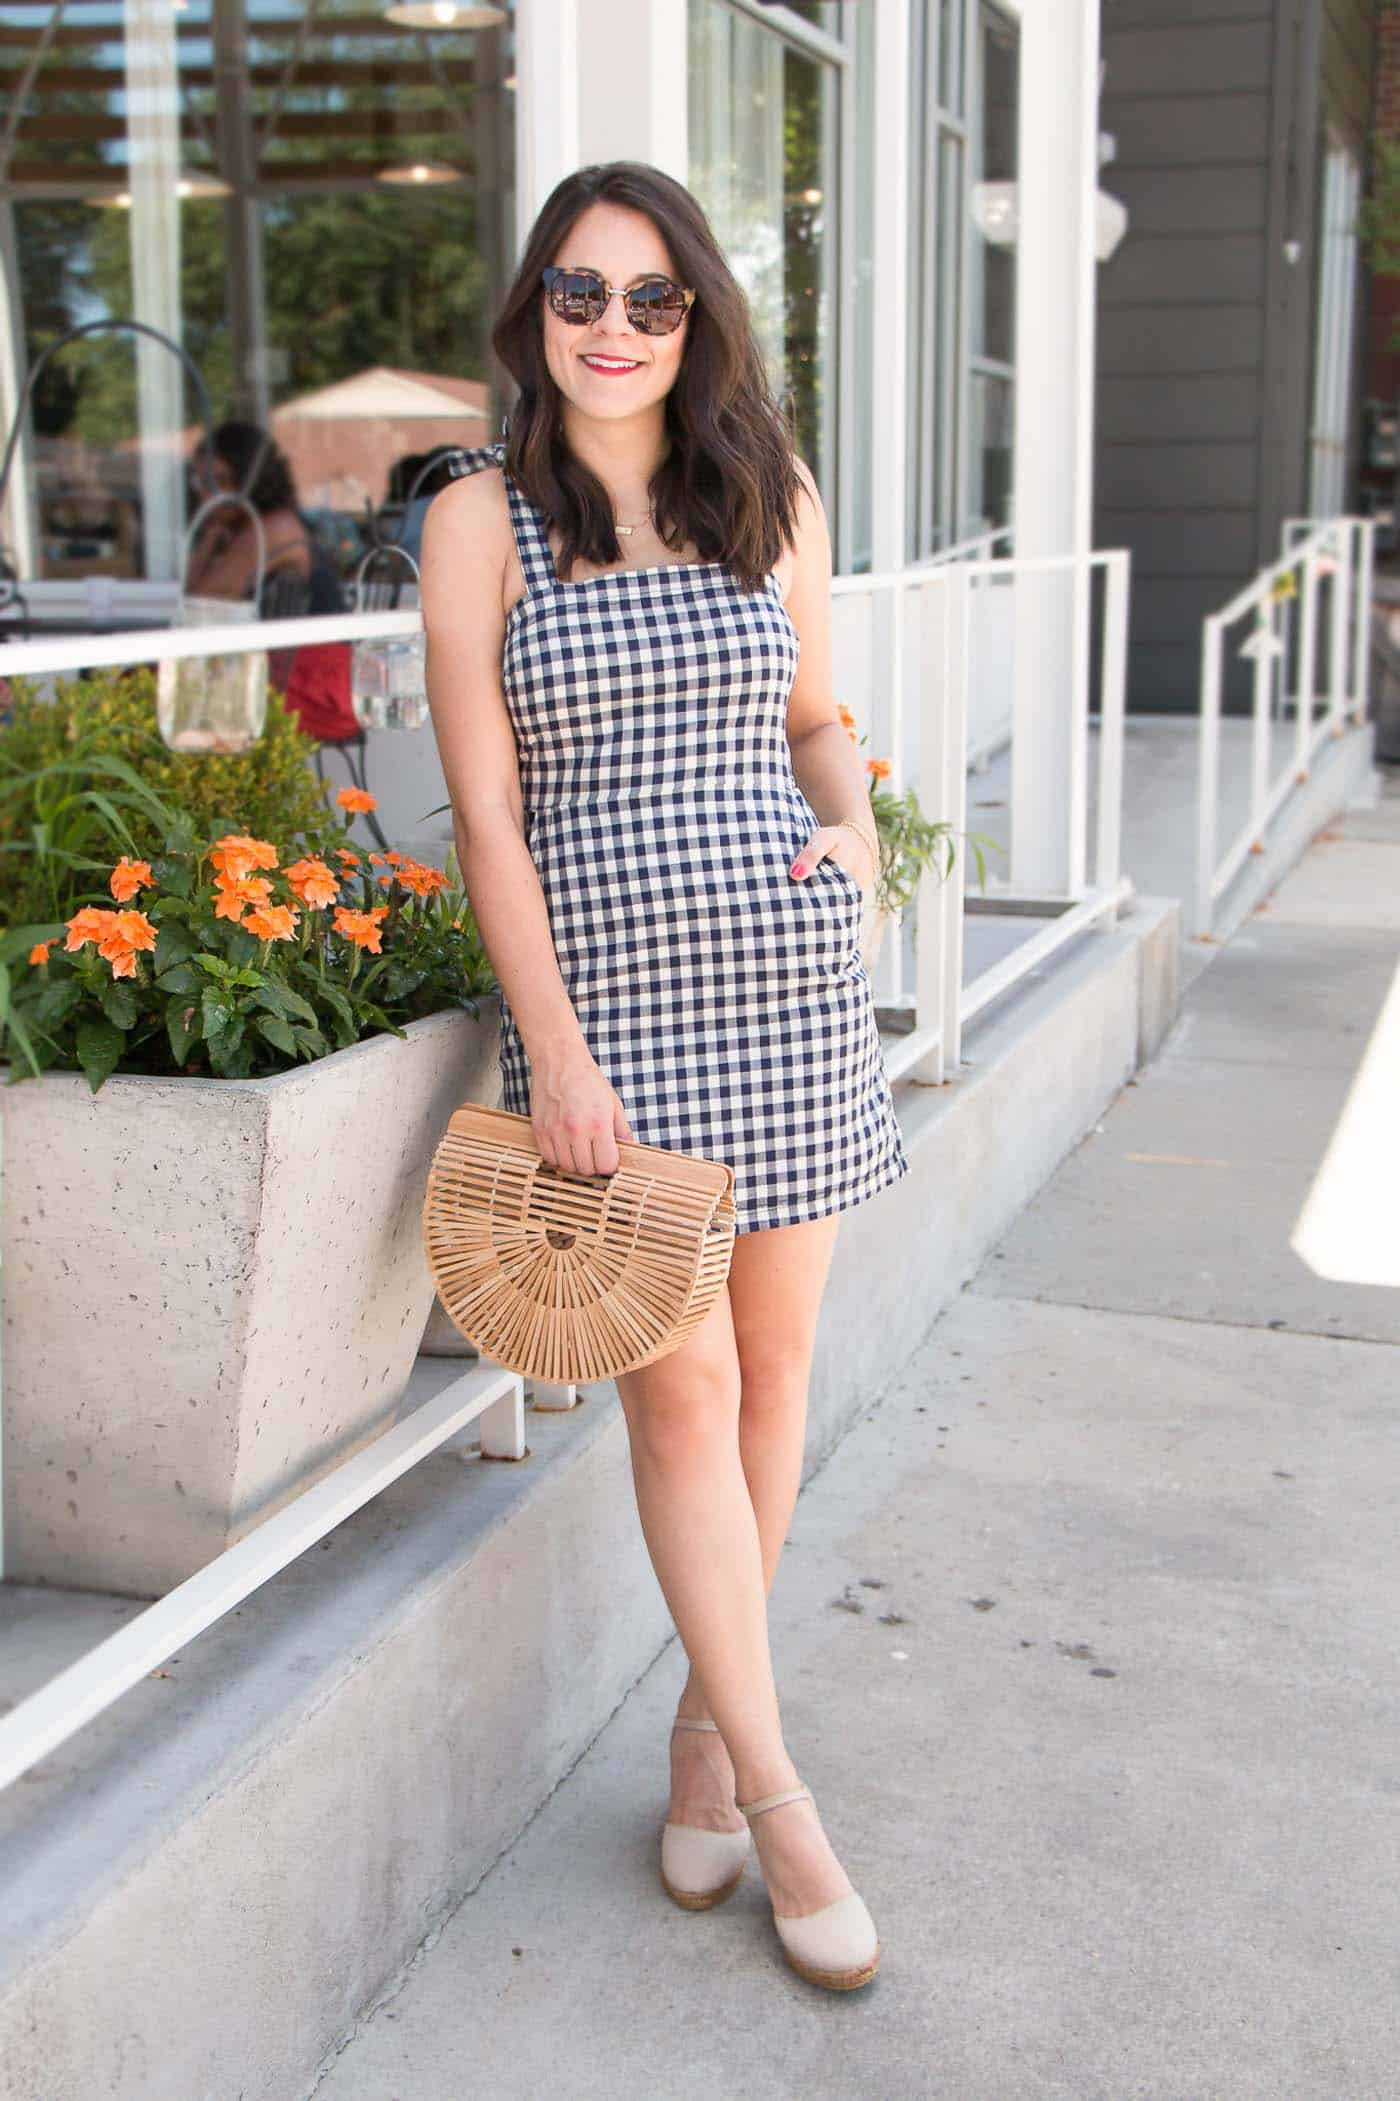 affordable gingham dress, gingham outfit, summer outfit ideas - My Style Vita @mystylevita